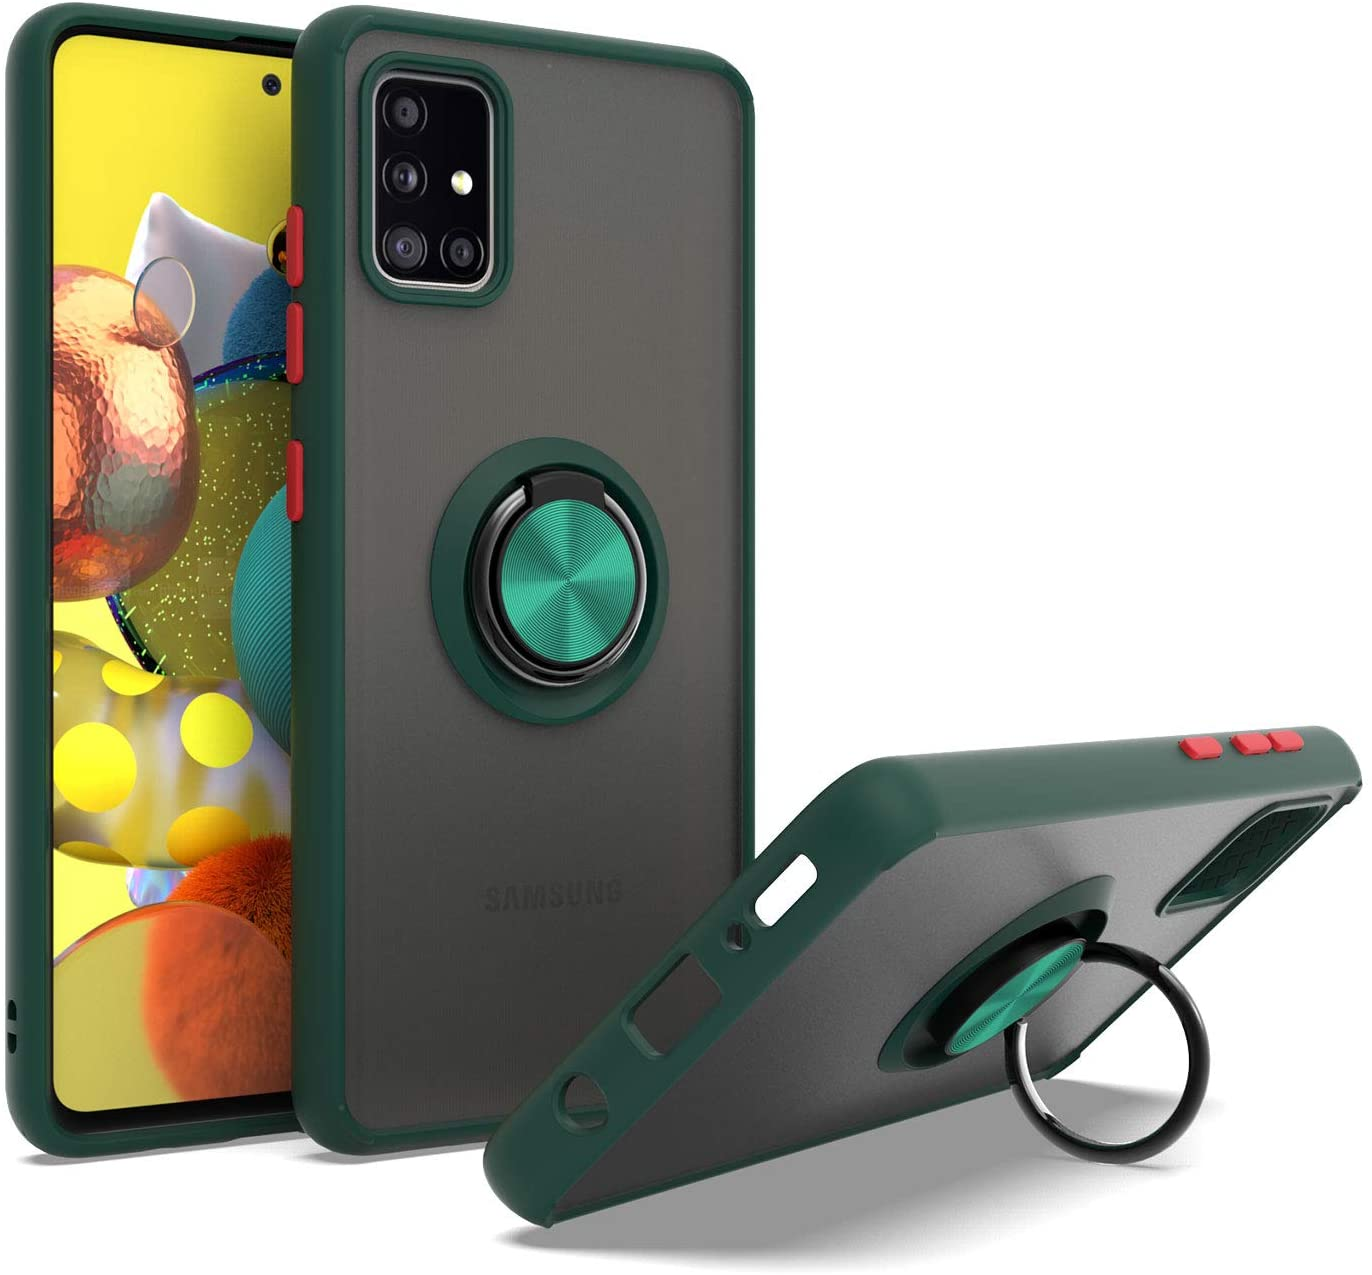 EnCASEs Cell Phone Case for Samsung Galaxy A51 5G, Slim TPU with Metal Ring Kickstand, Shockproof Bumper Protection Case, Green